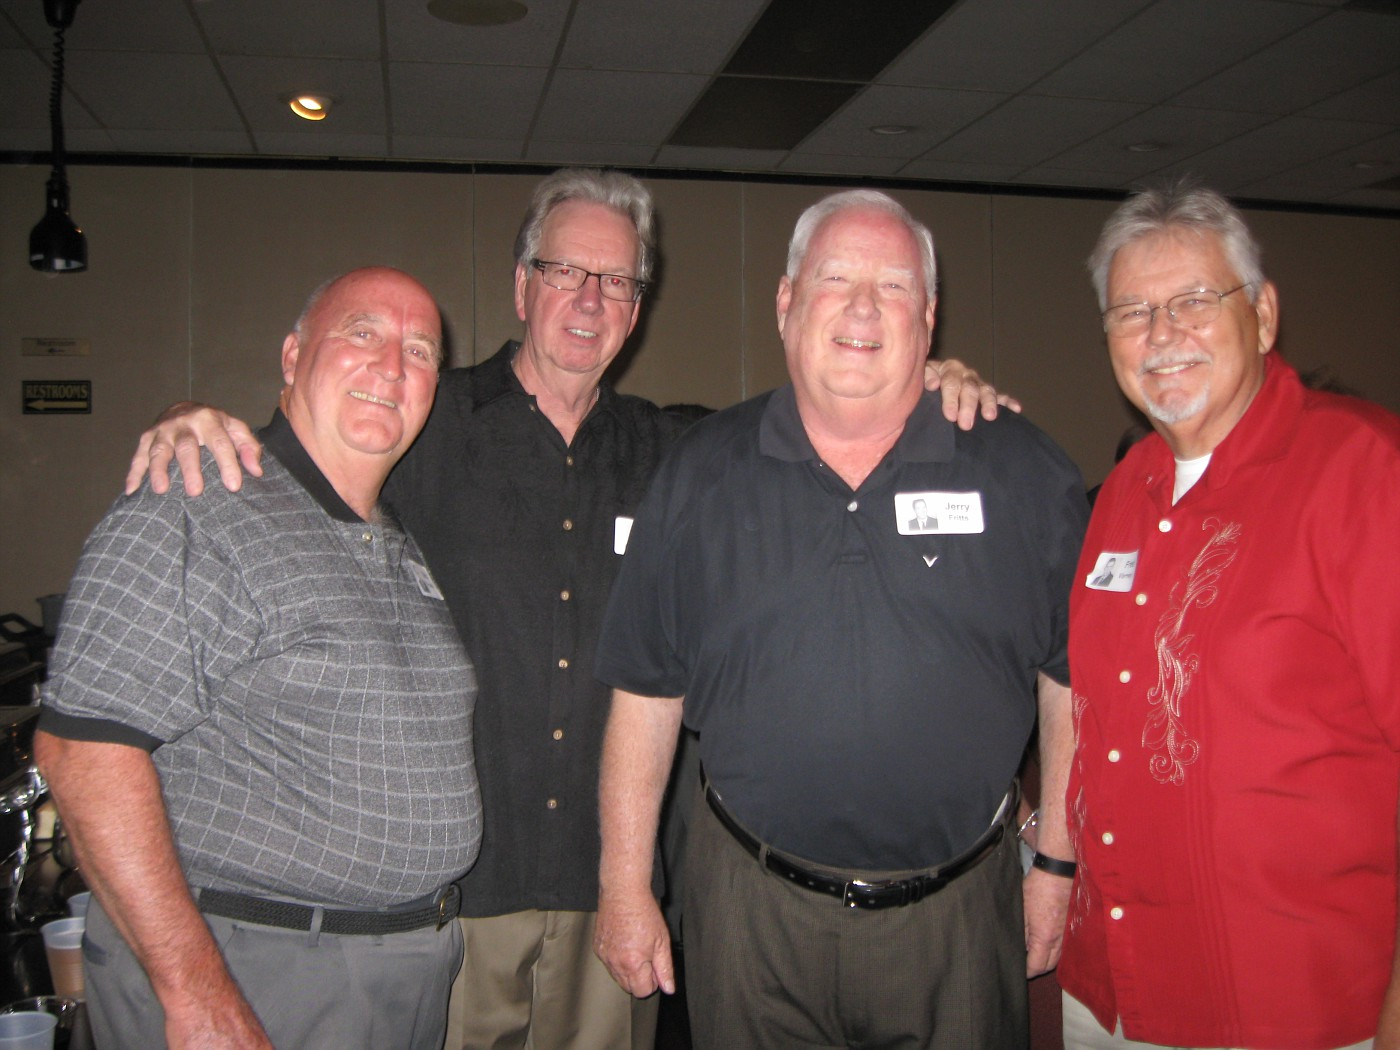 Skip Polete, Jerry Mills, Jerry Fritts, Fred Varney